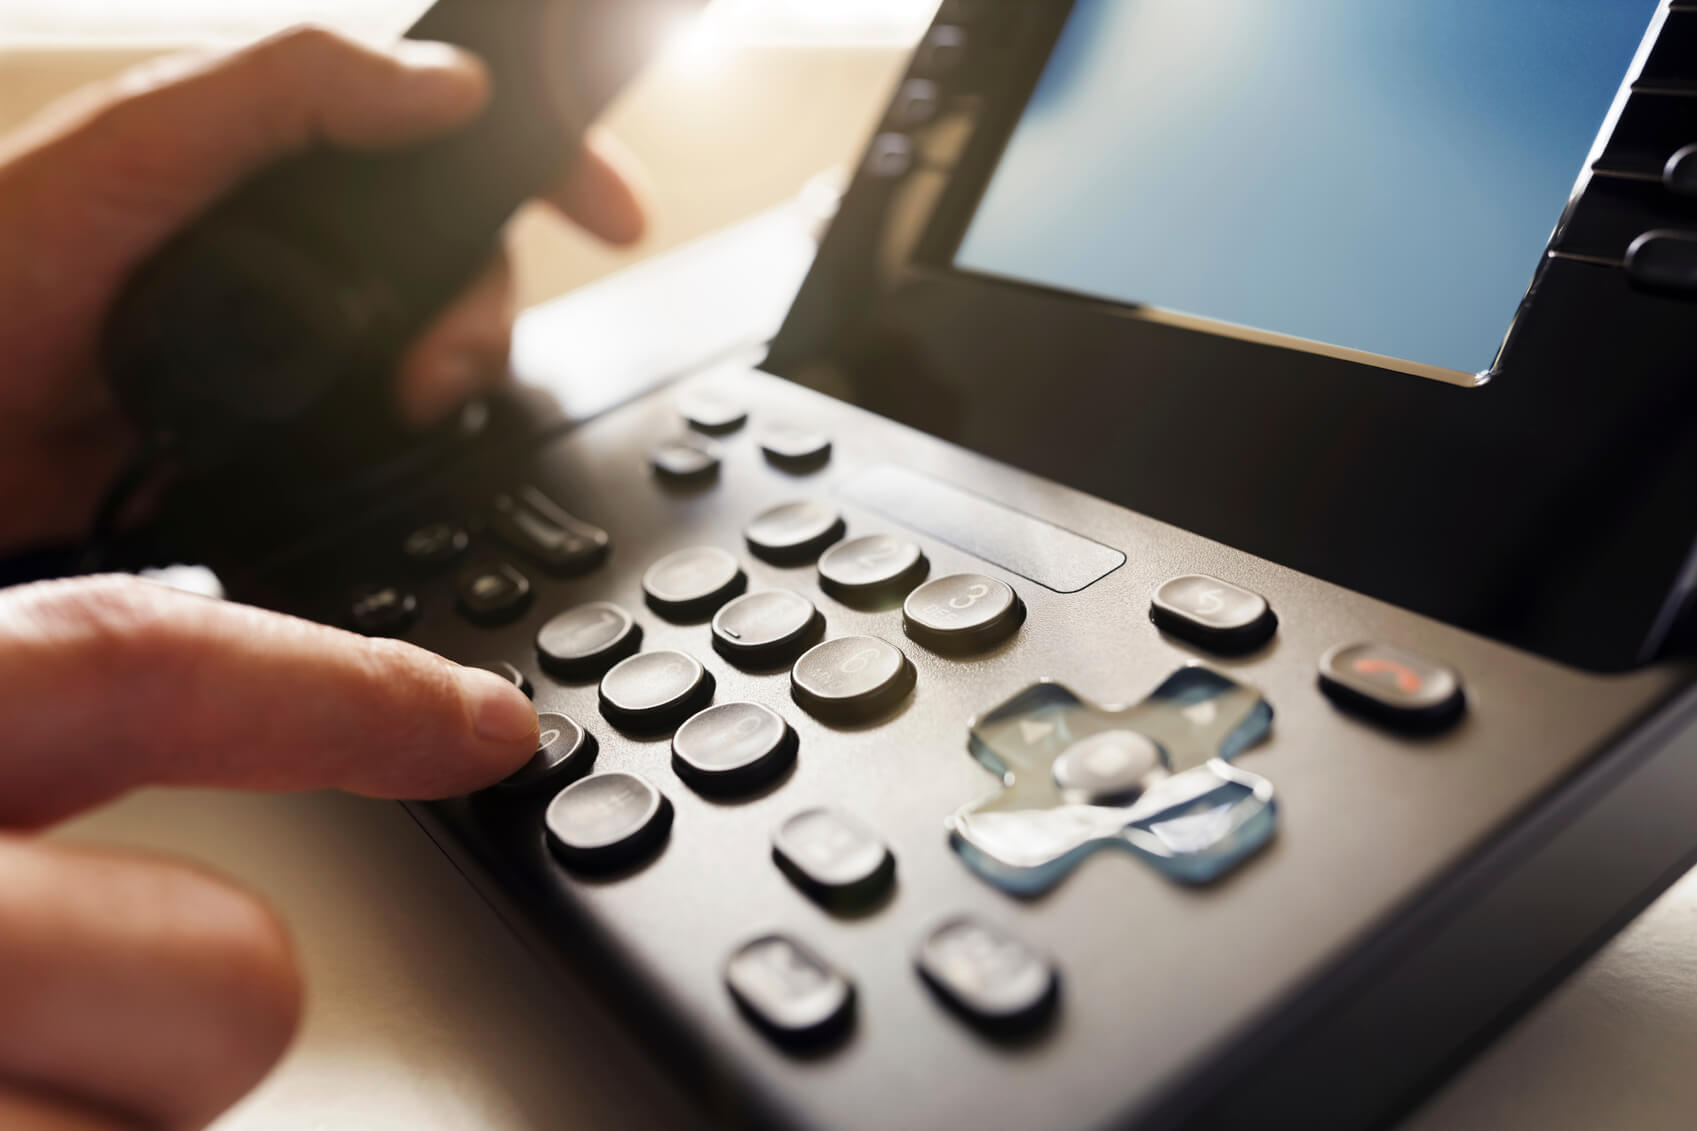 Hosted telephony: Enabling flexibility and powering great customer service